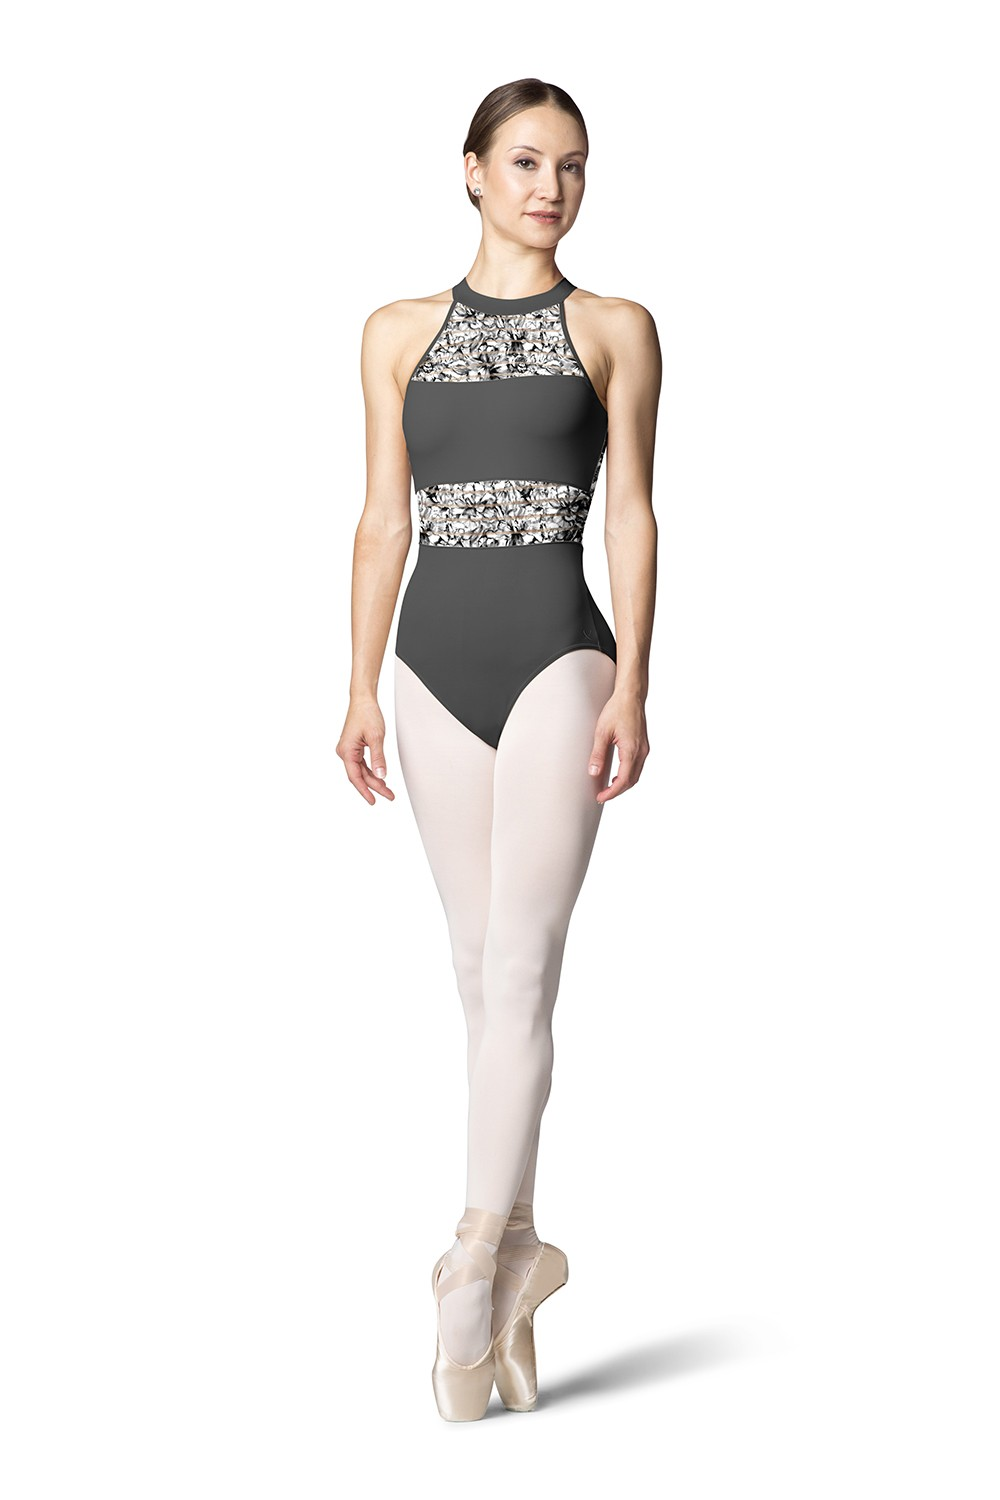 Ilona Women's Dance Leotards